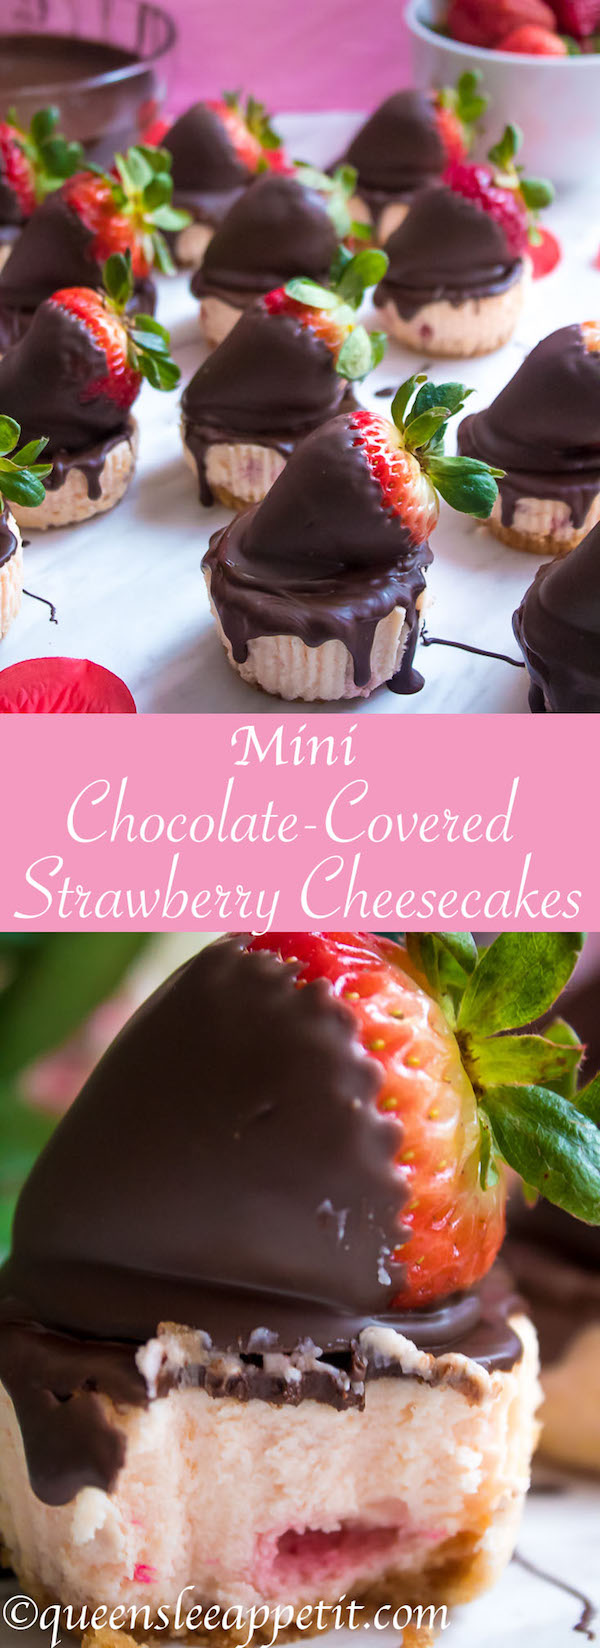 These Mini Chocolate Covered Strawberry Cheesecakes are made with a creamy bite-sized strawberry cheesecake and juicy chocolate covered strawberries. These are the perfect treats to finish off a romantic Valentine's Day dinner!